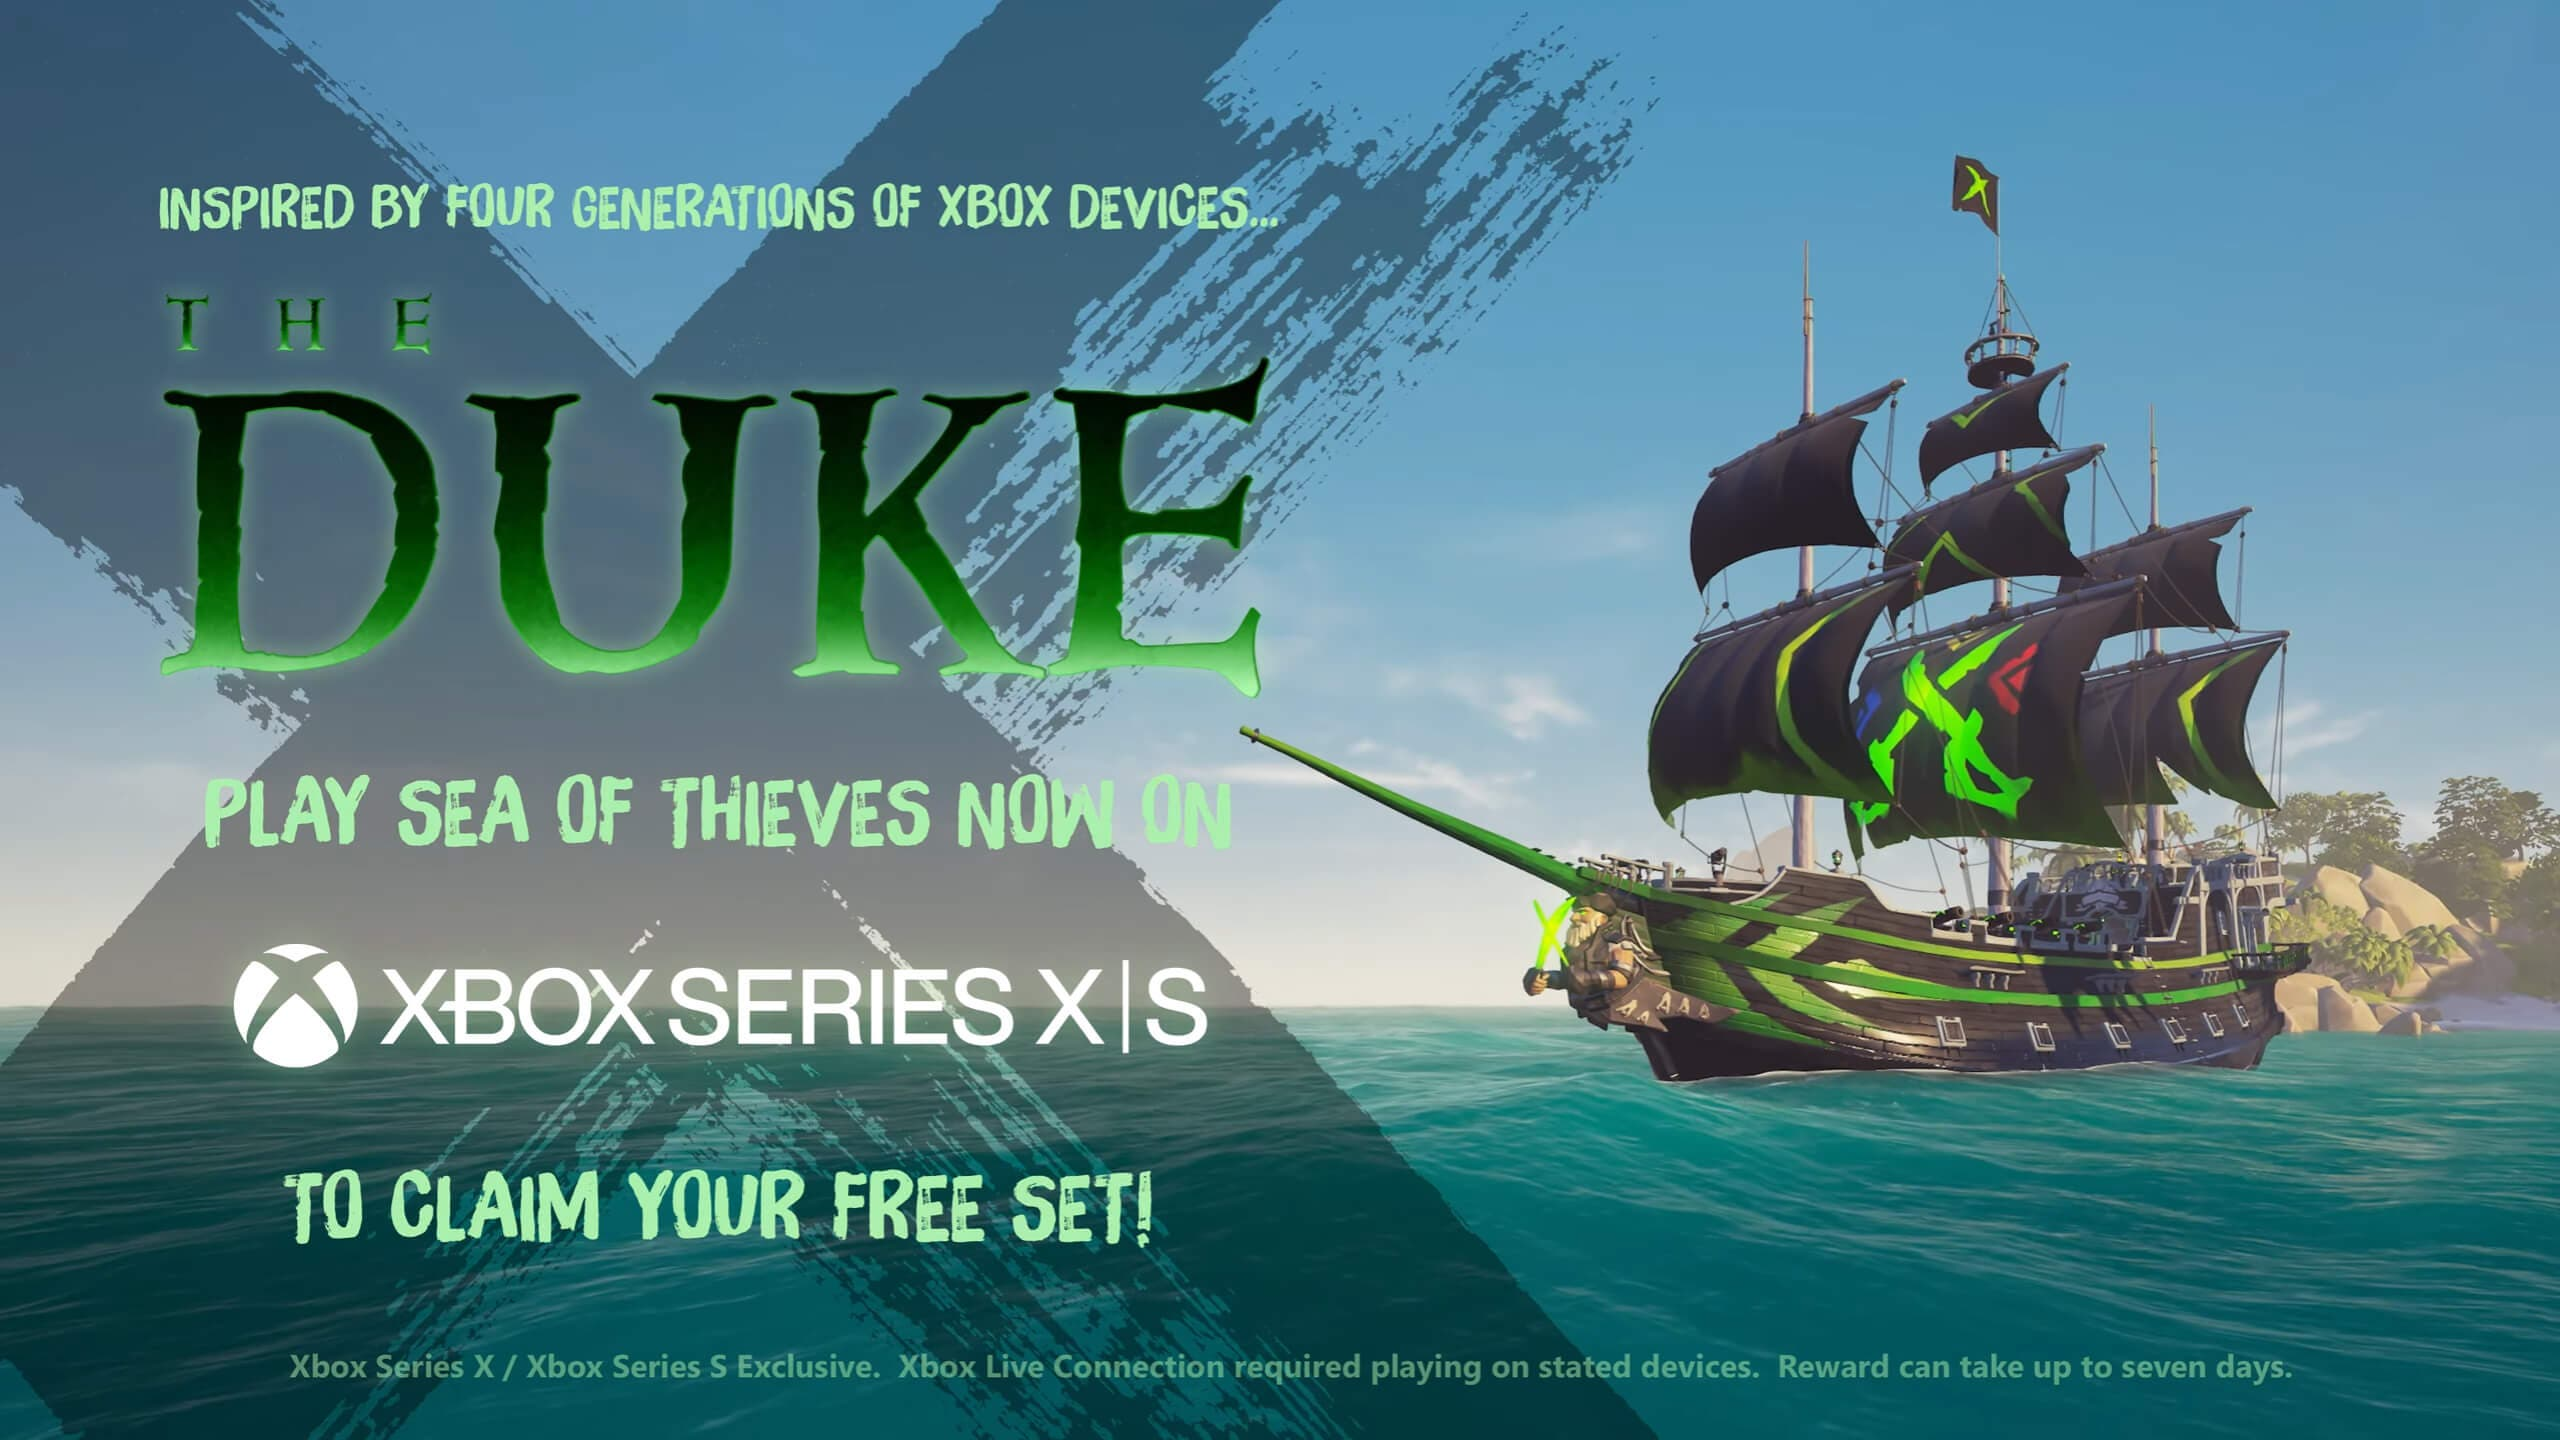 Consigue una skin gratis para tu barco de Sea of Thieves en Xbox Series X|S